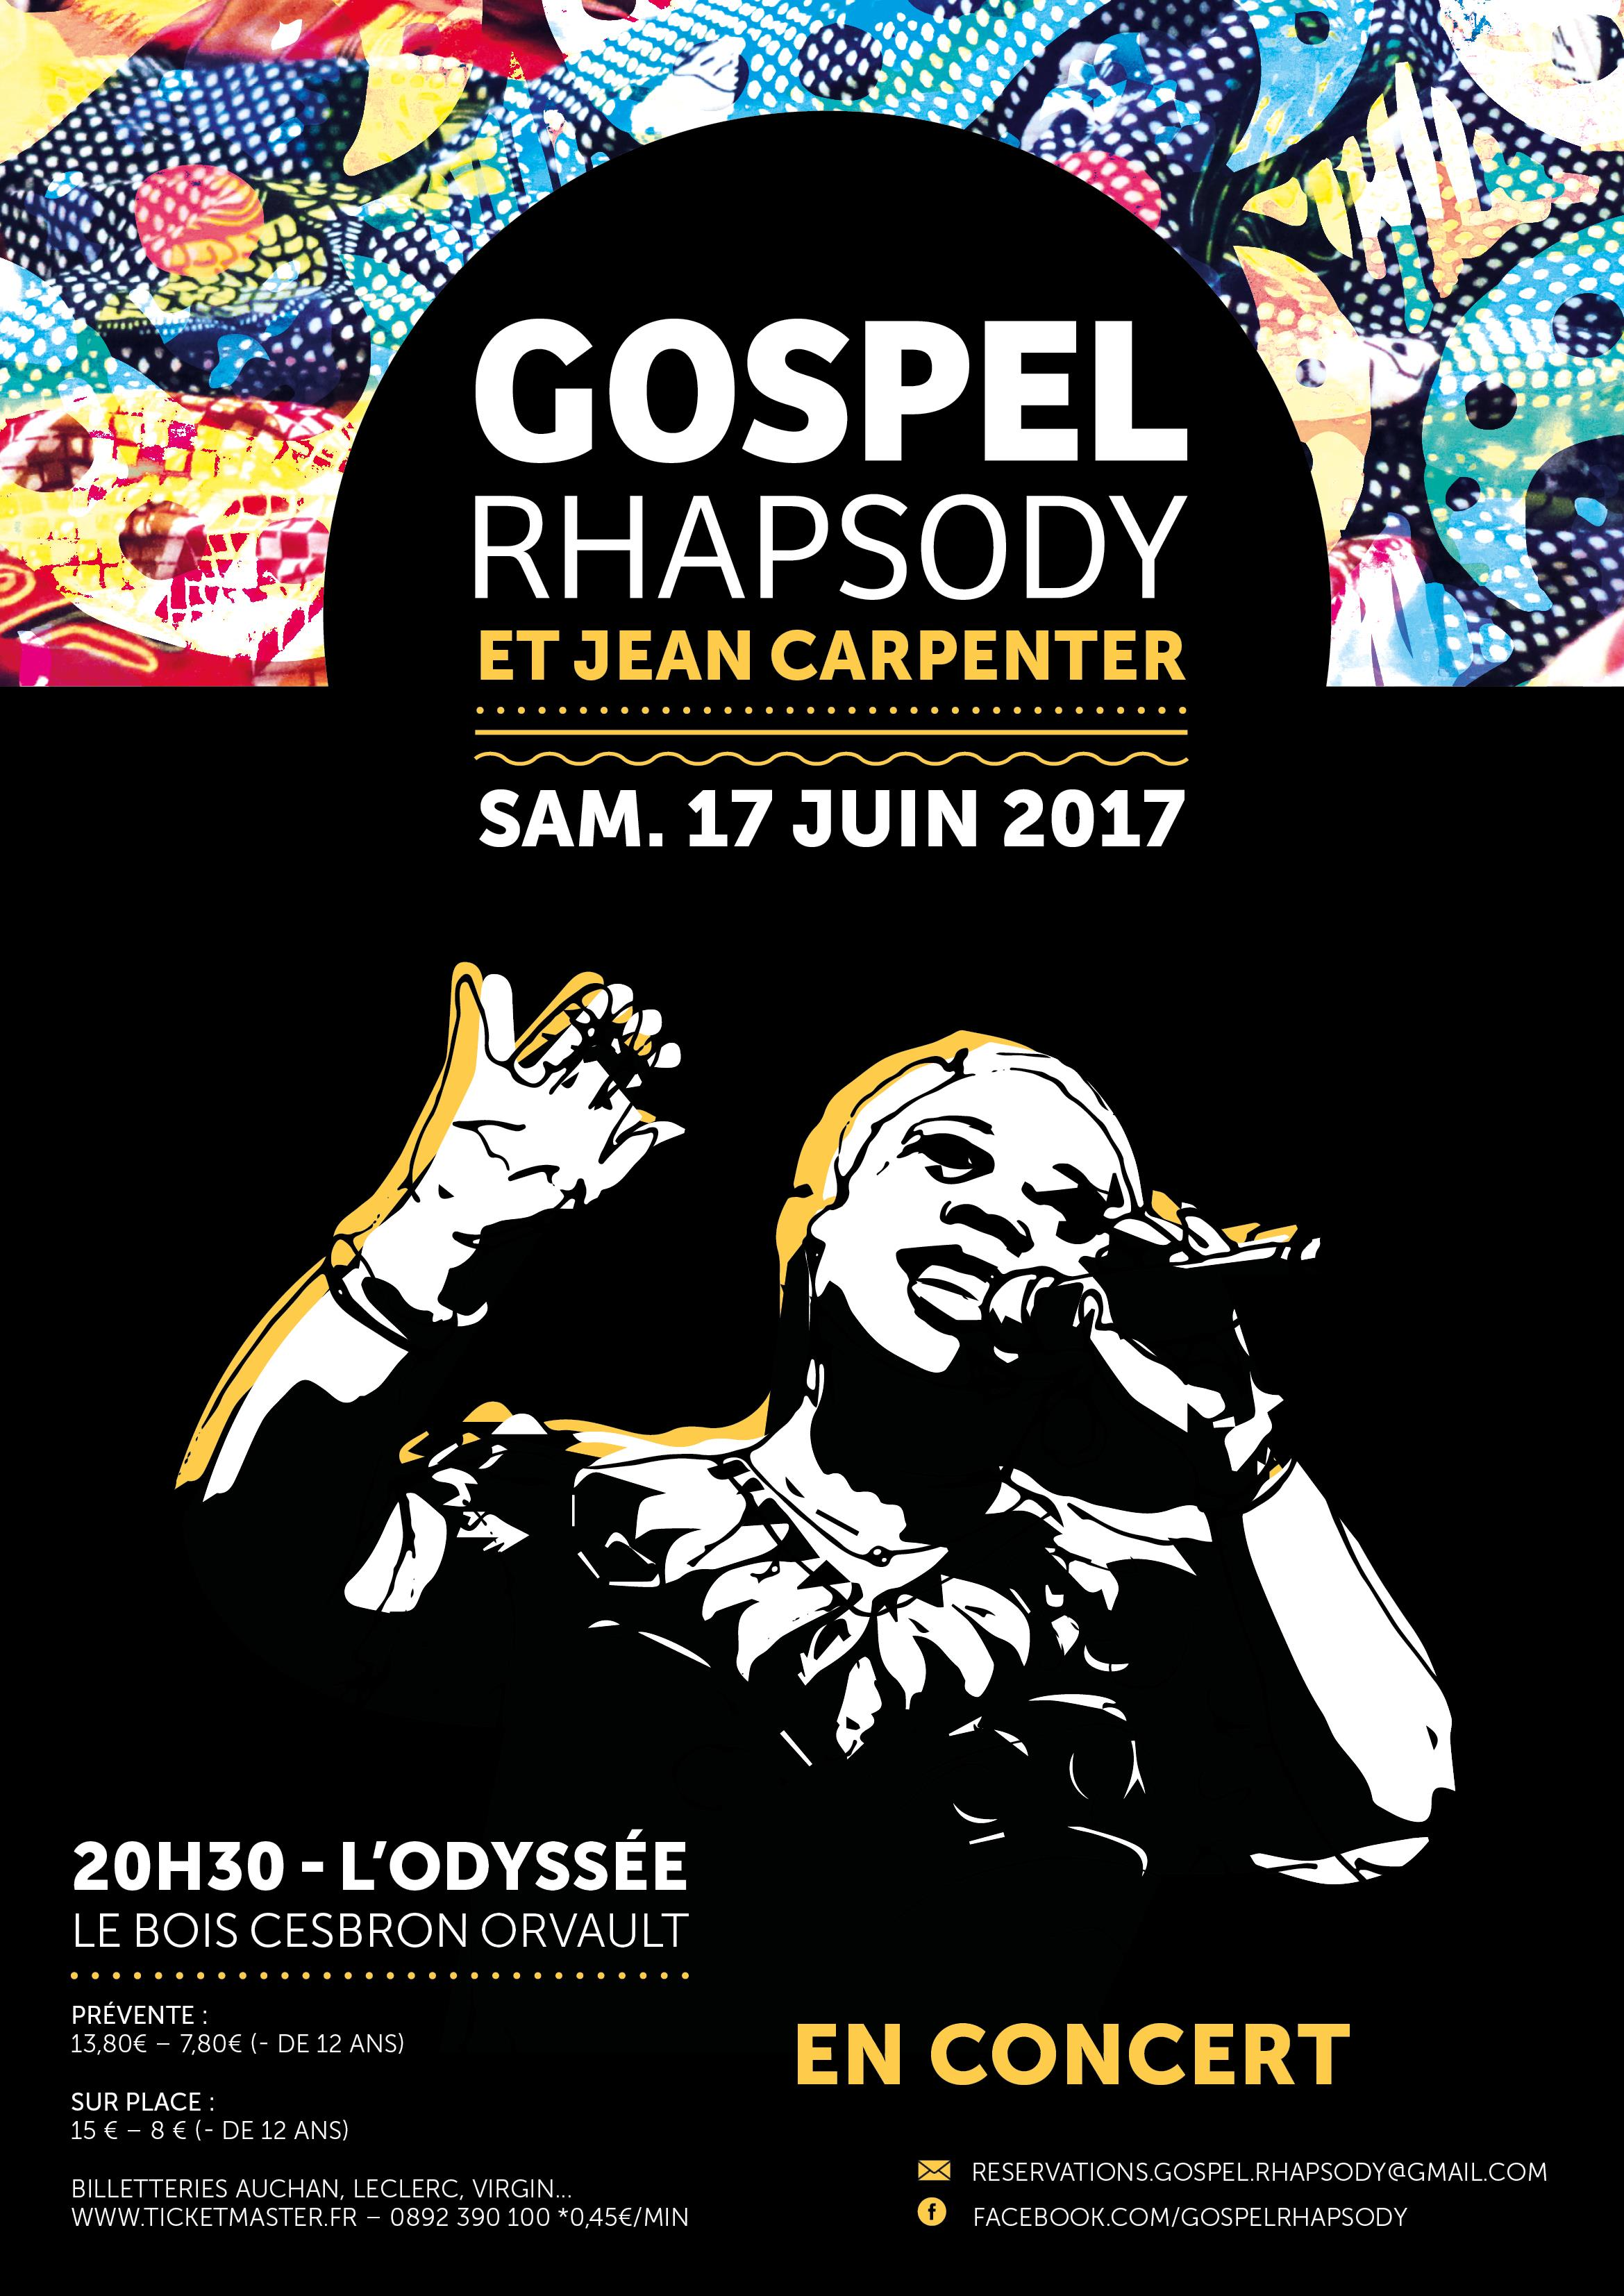 GOSPEL RHAPSODY ET JEAN CARPENTER